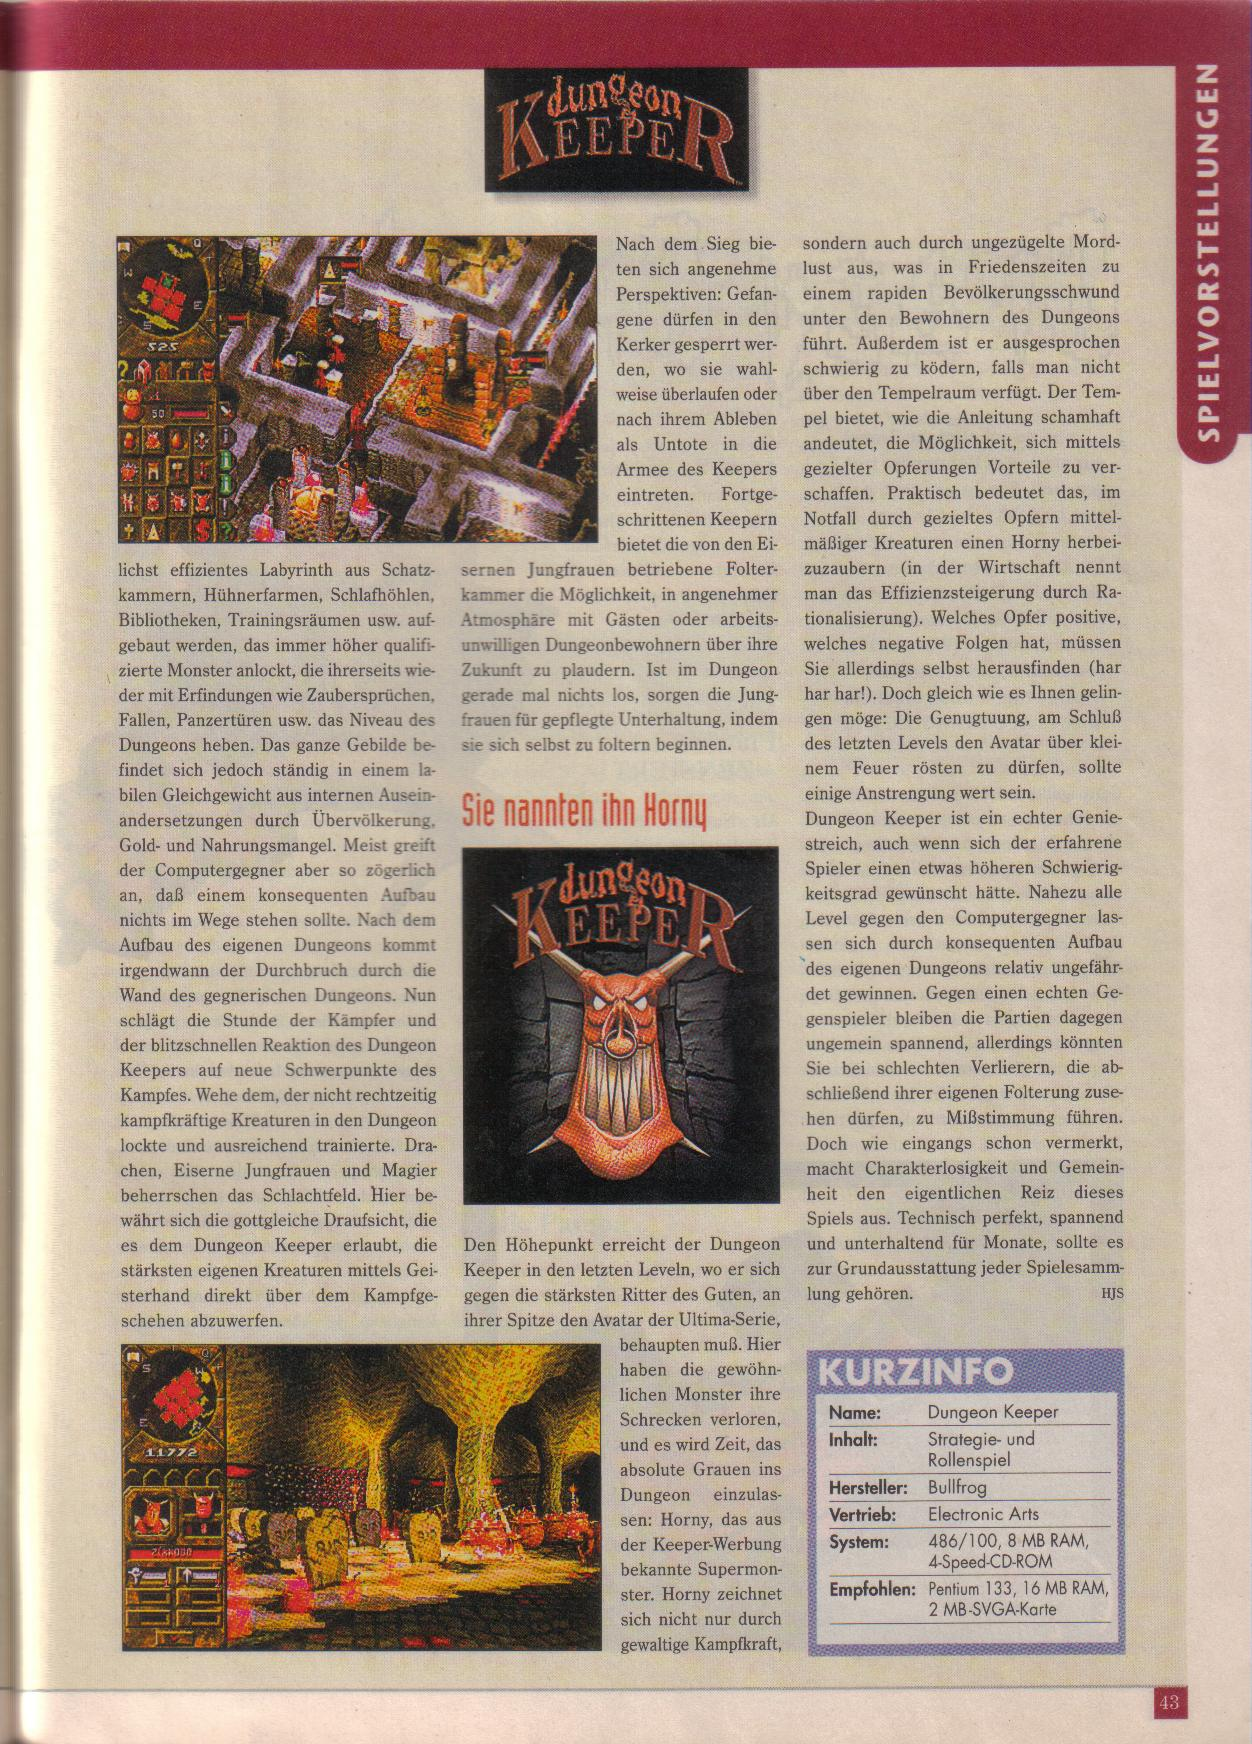 Dungeon Master II for PC (German, Best Seller Games) Page 43